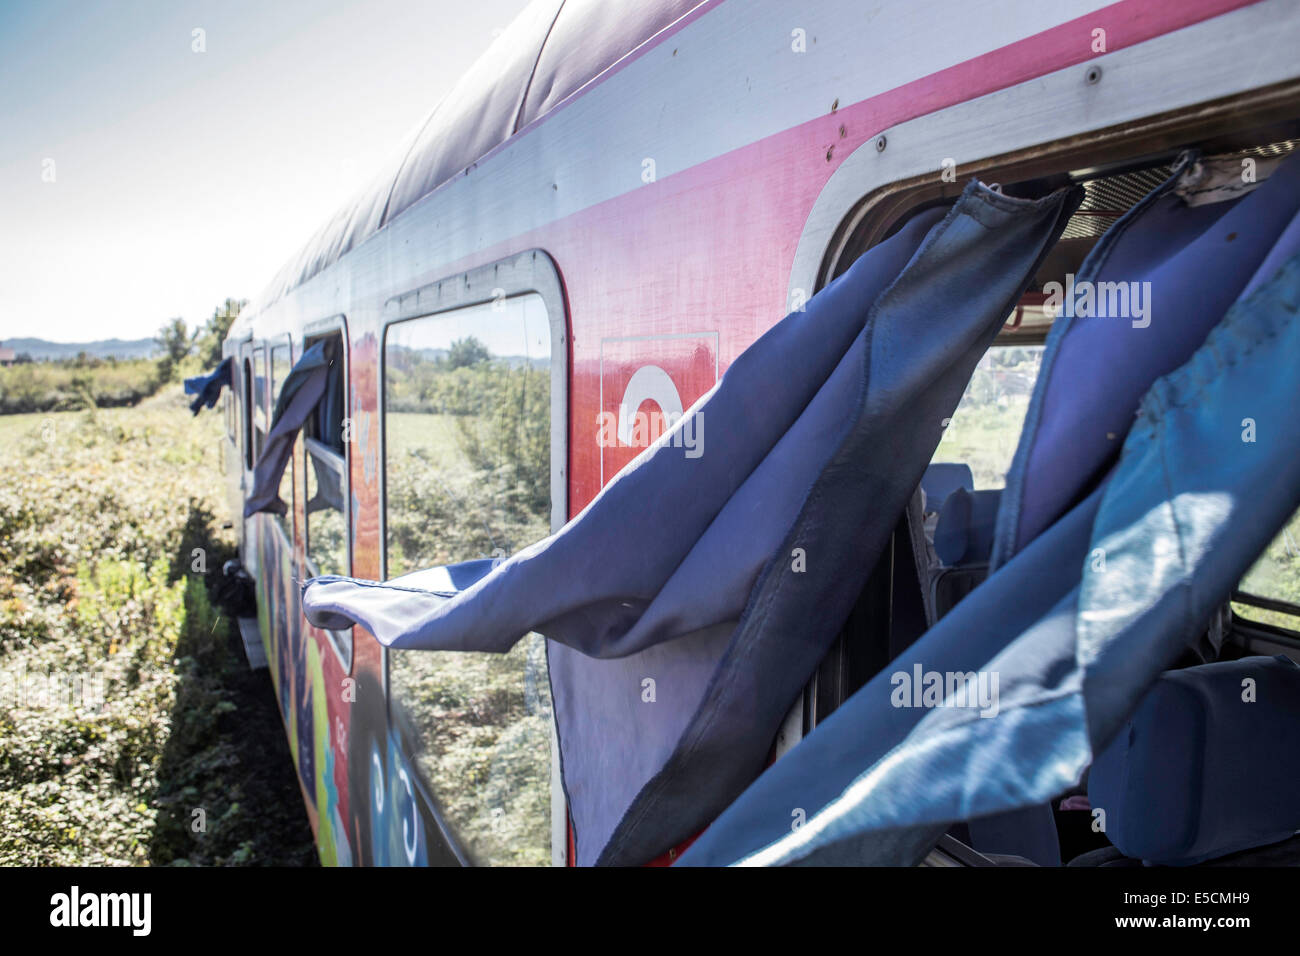 Train from Tirana to Shkoder, one of the few train connections in the country, Albania - Stock Image